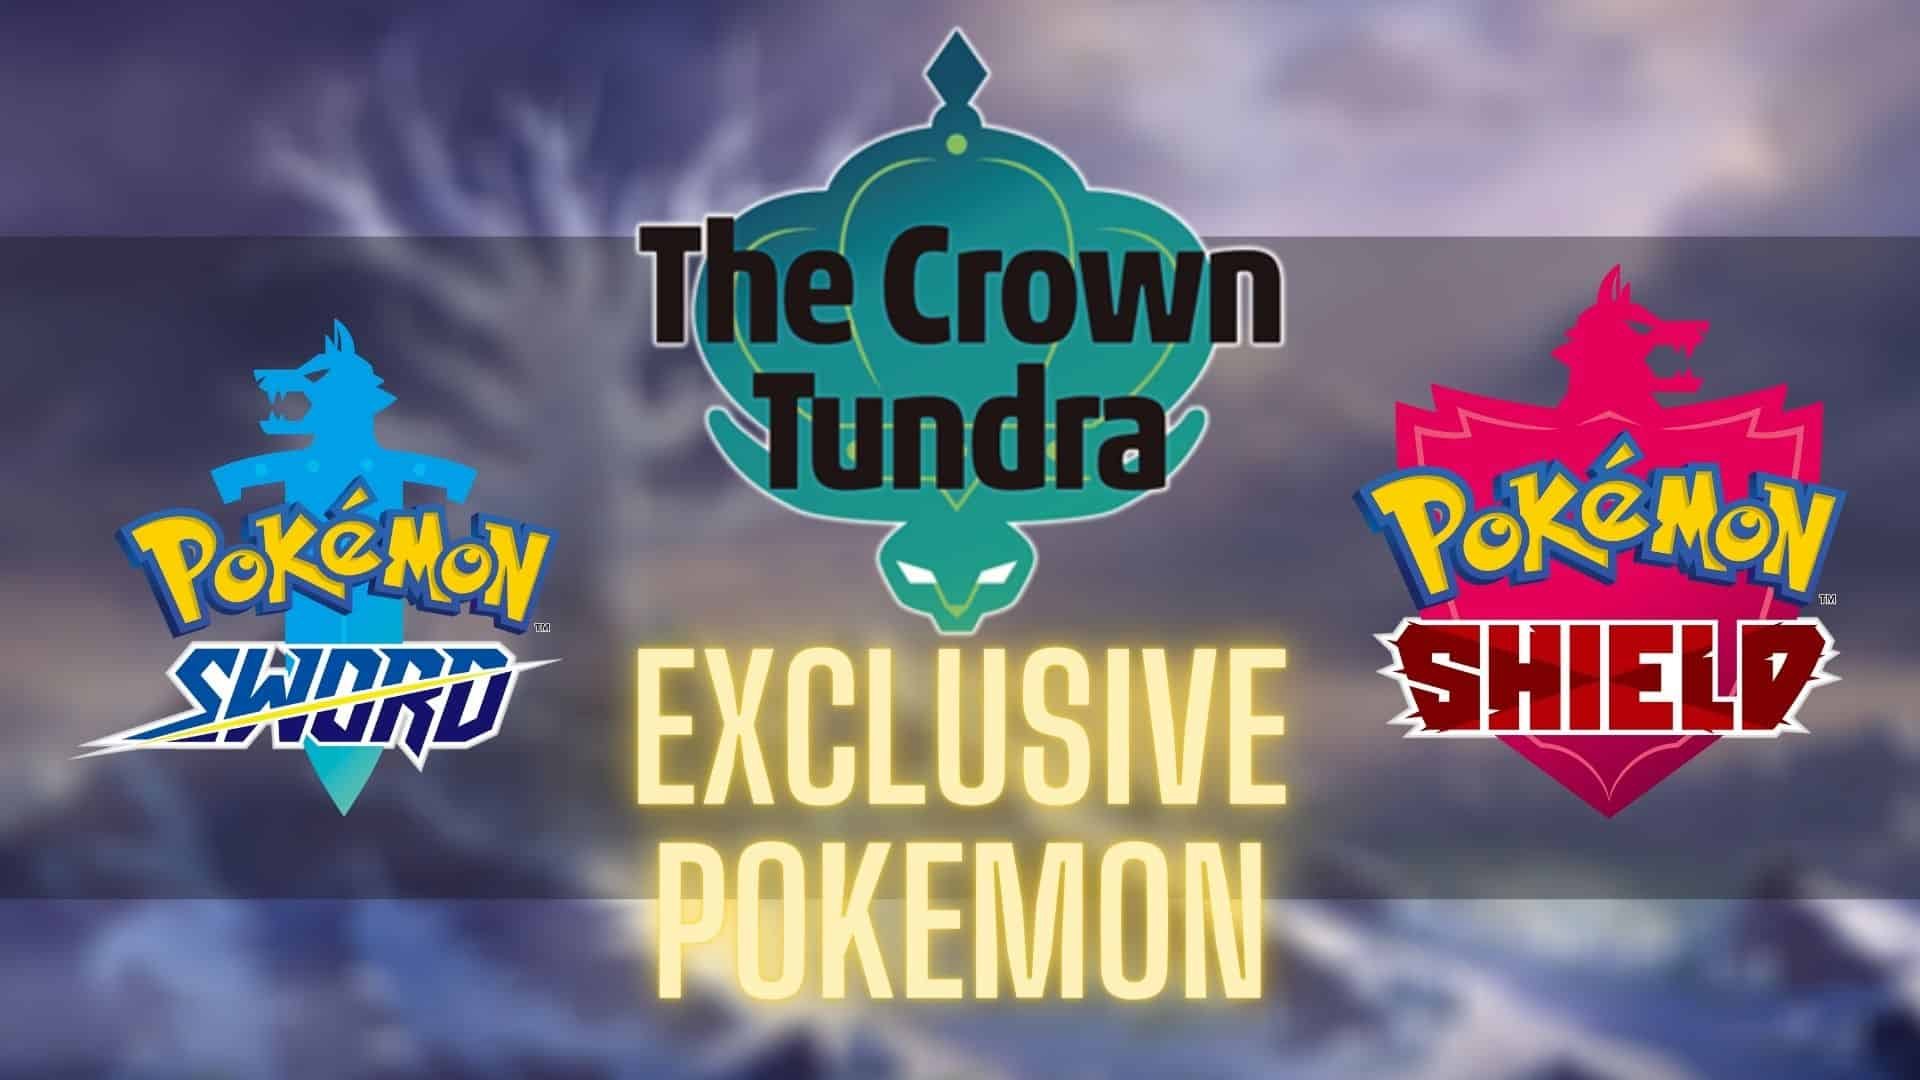 Crown Tundra Pokemon